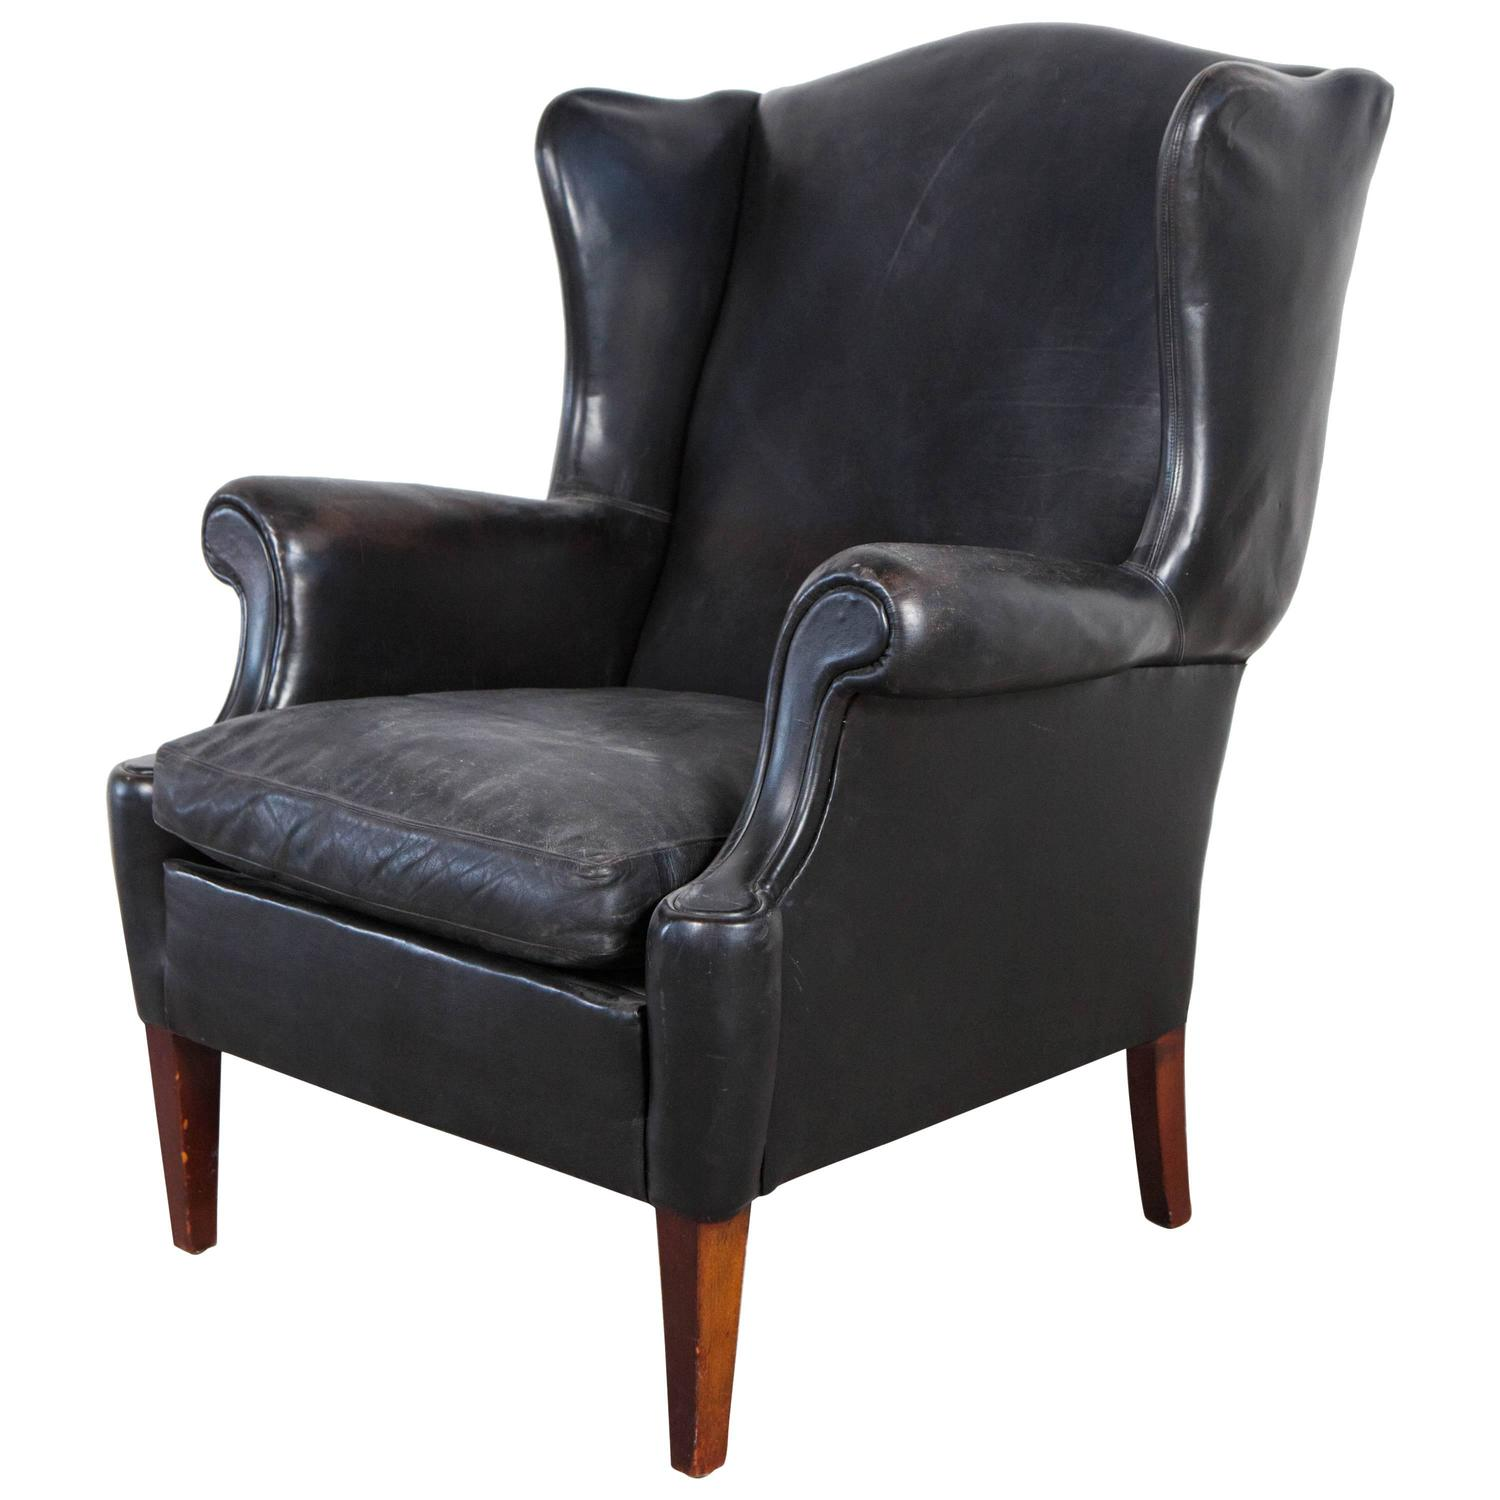 Wing back leather chair high leather wingback chair at for Wing back recliner chair